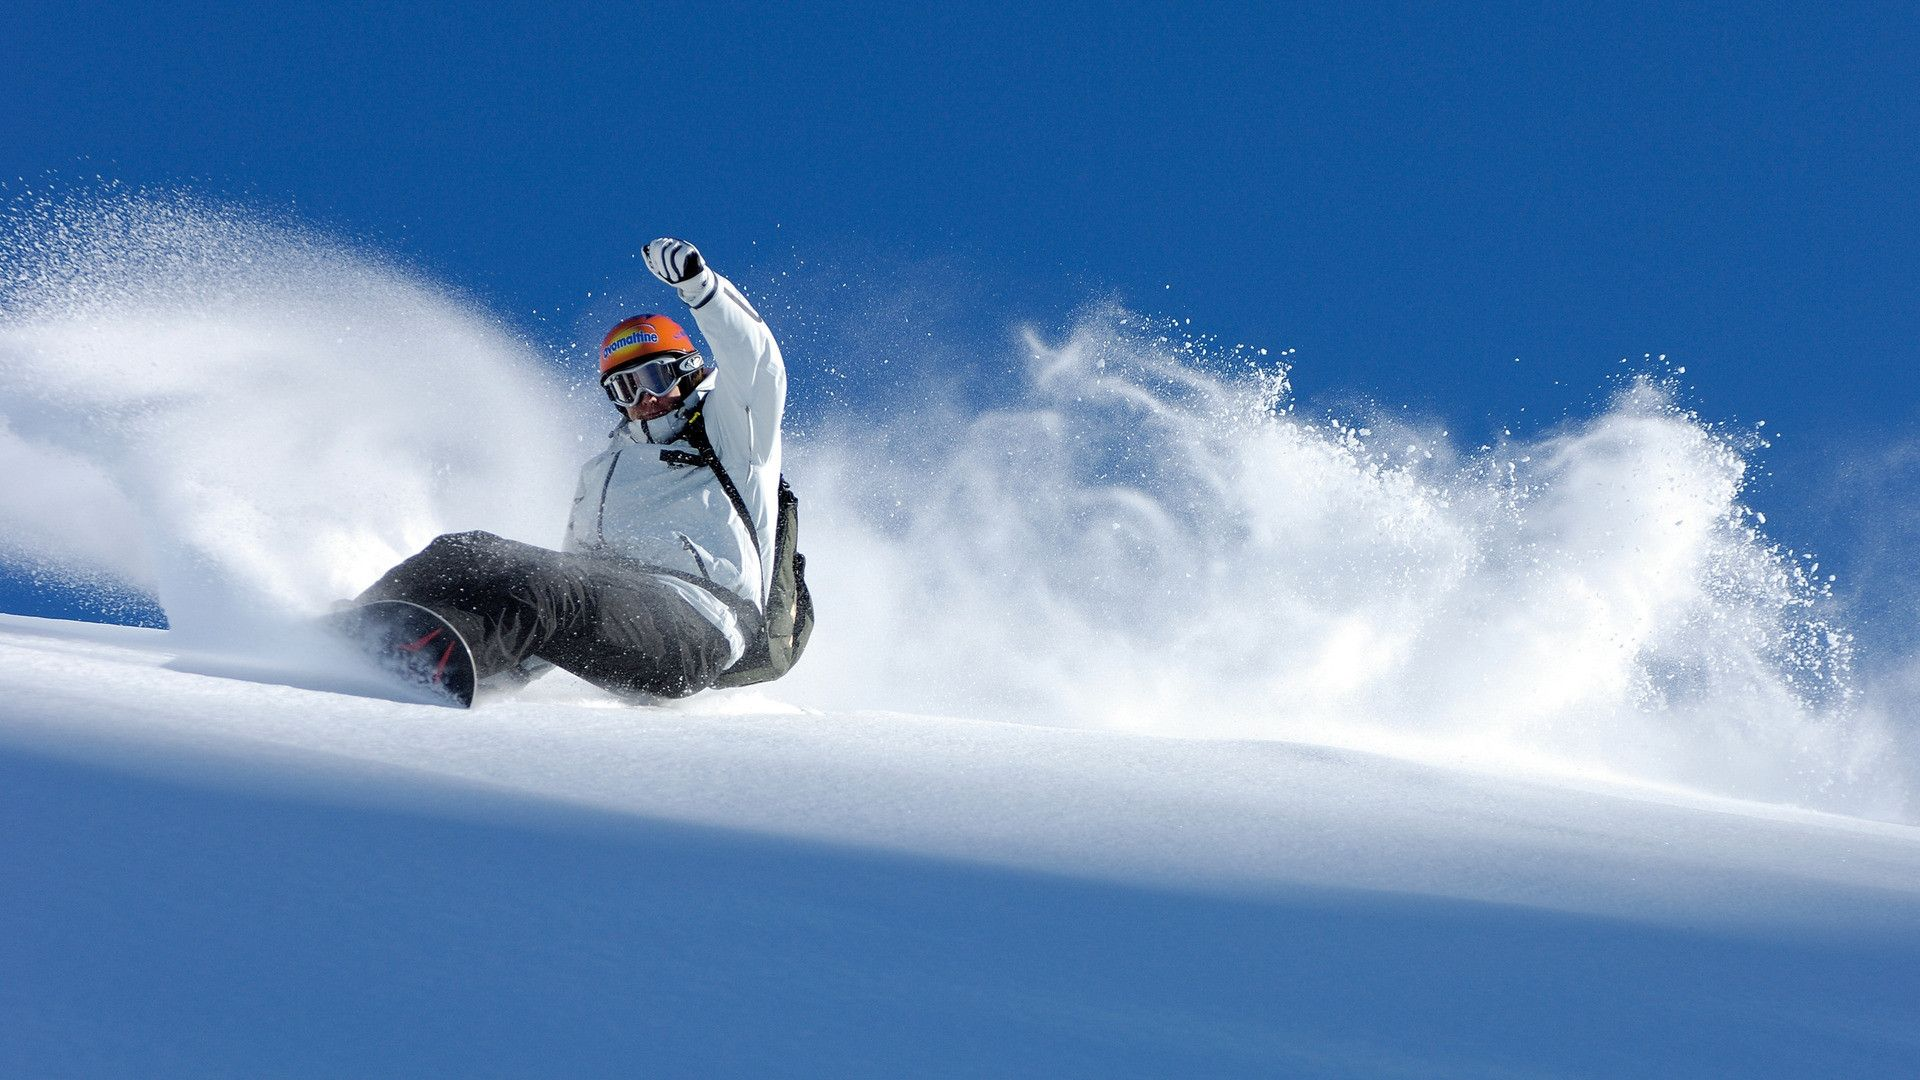 Wallpapers For Shaun White Snowboarding Wallpaper | www ...